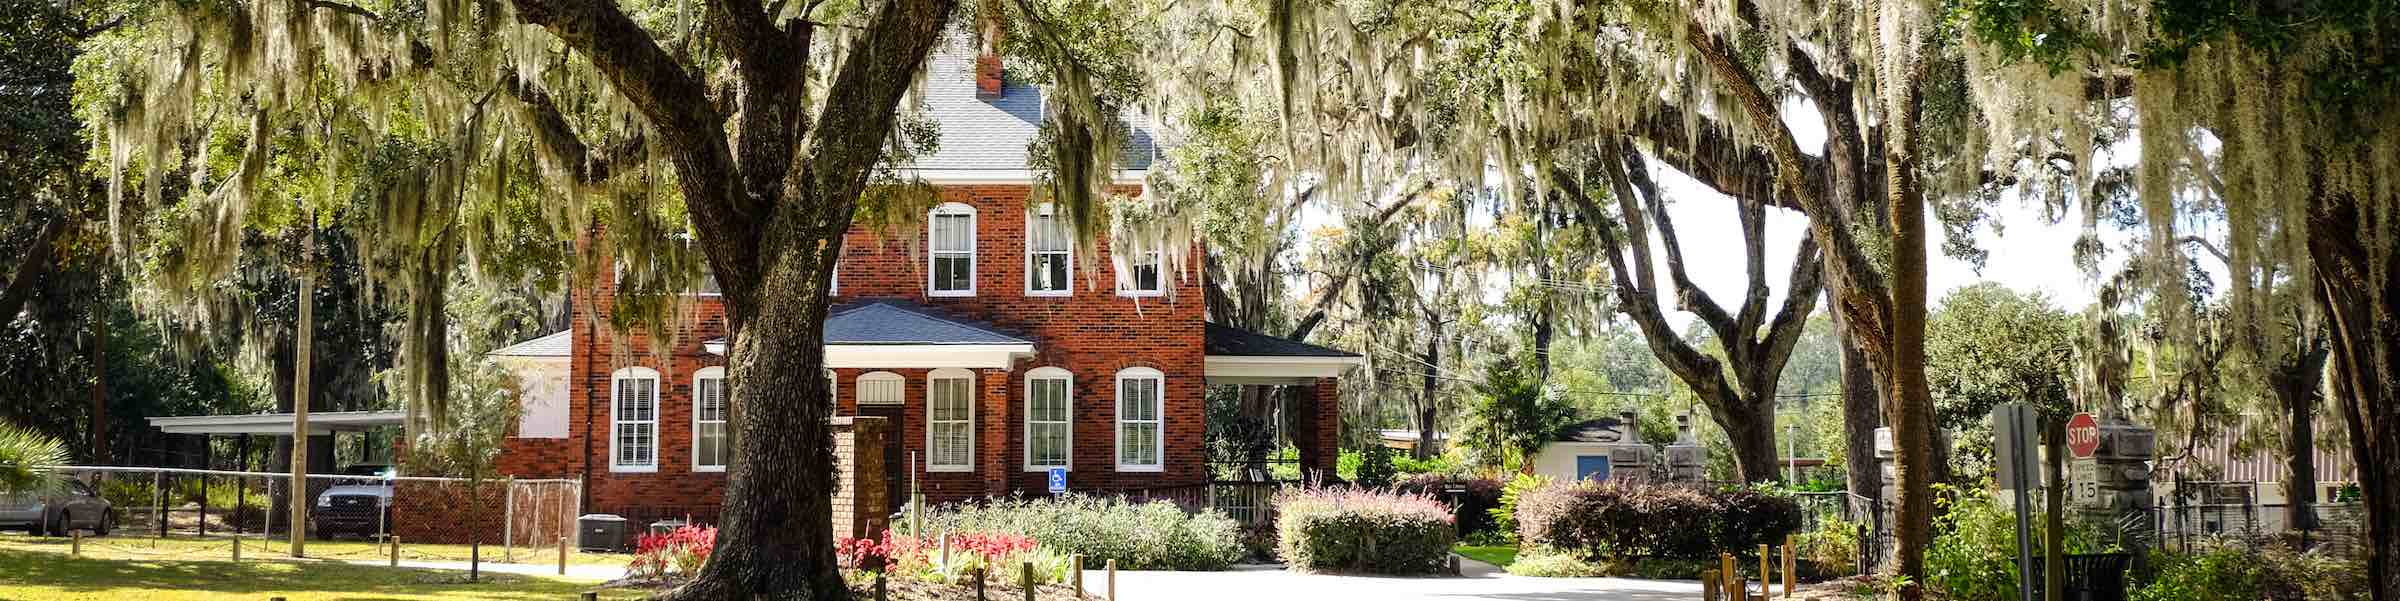 The old keeper's house at the entrance to Bonaventure Cemetery, Savannah, GA.